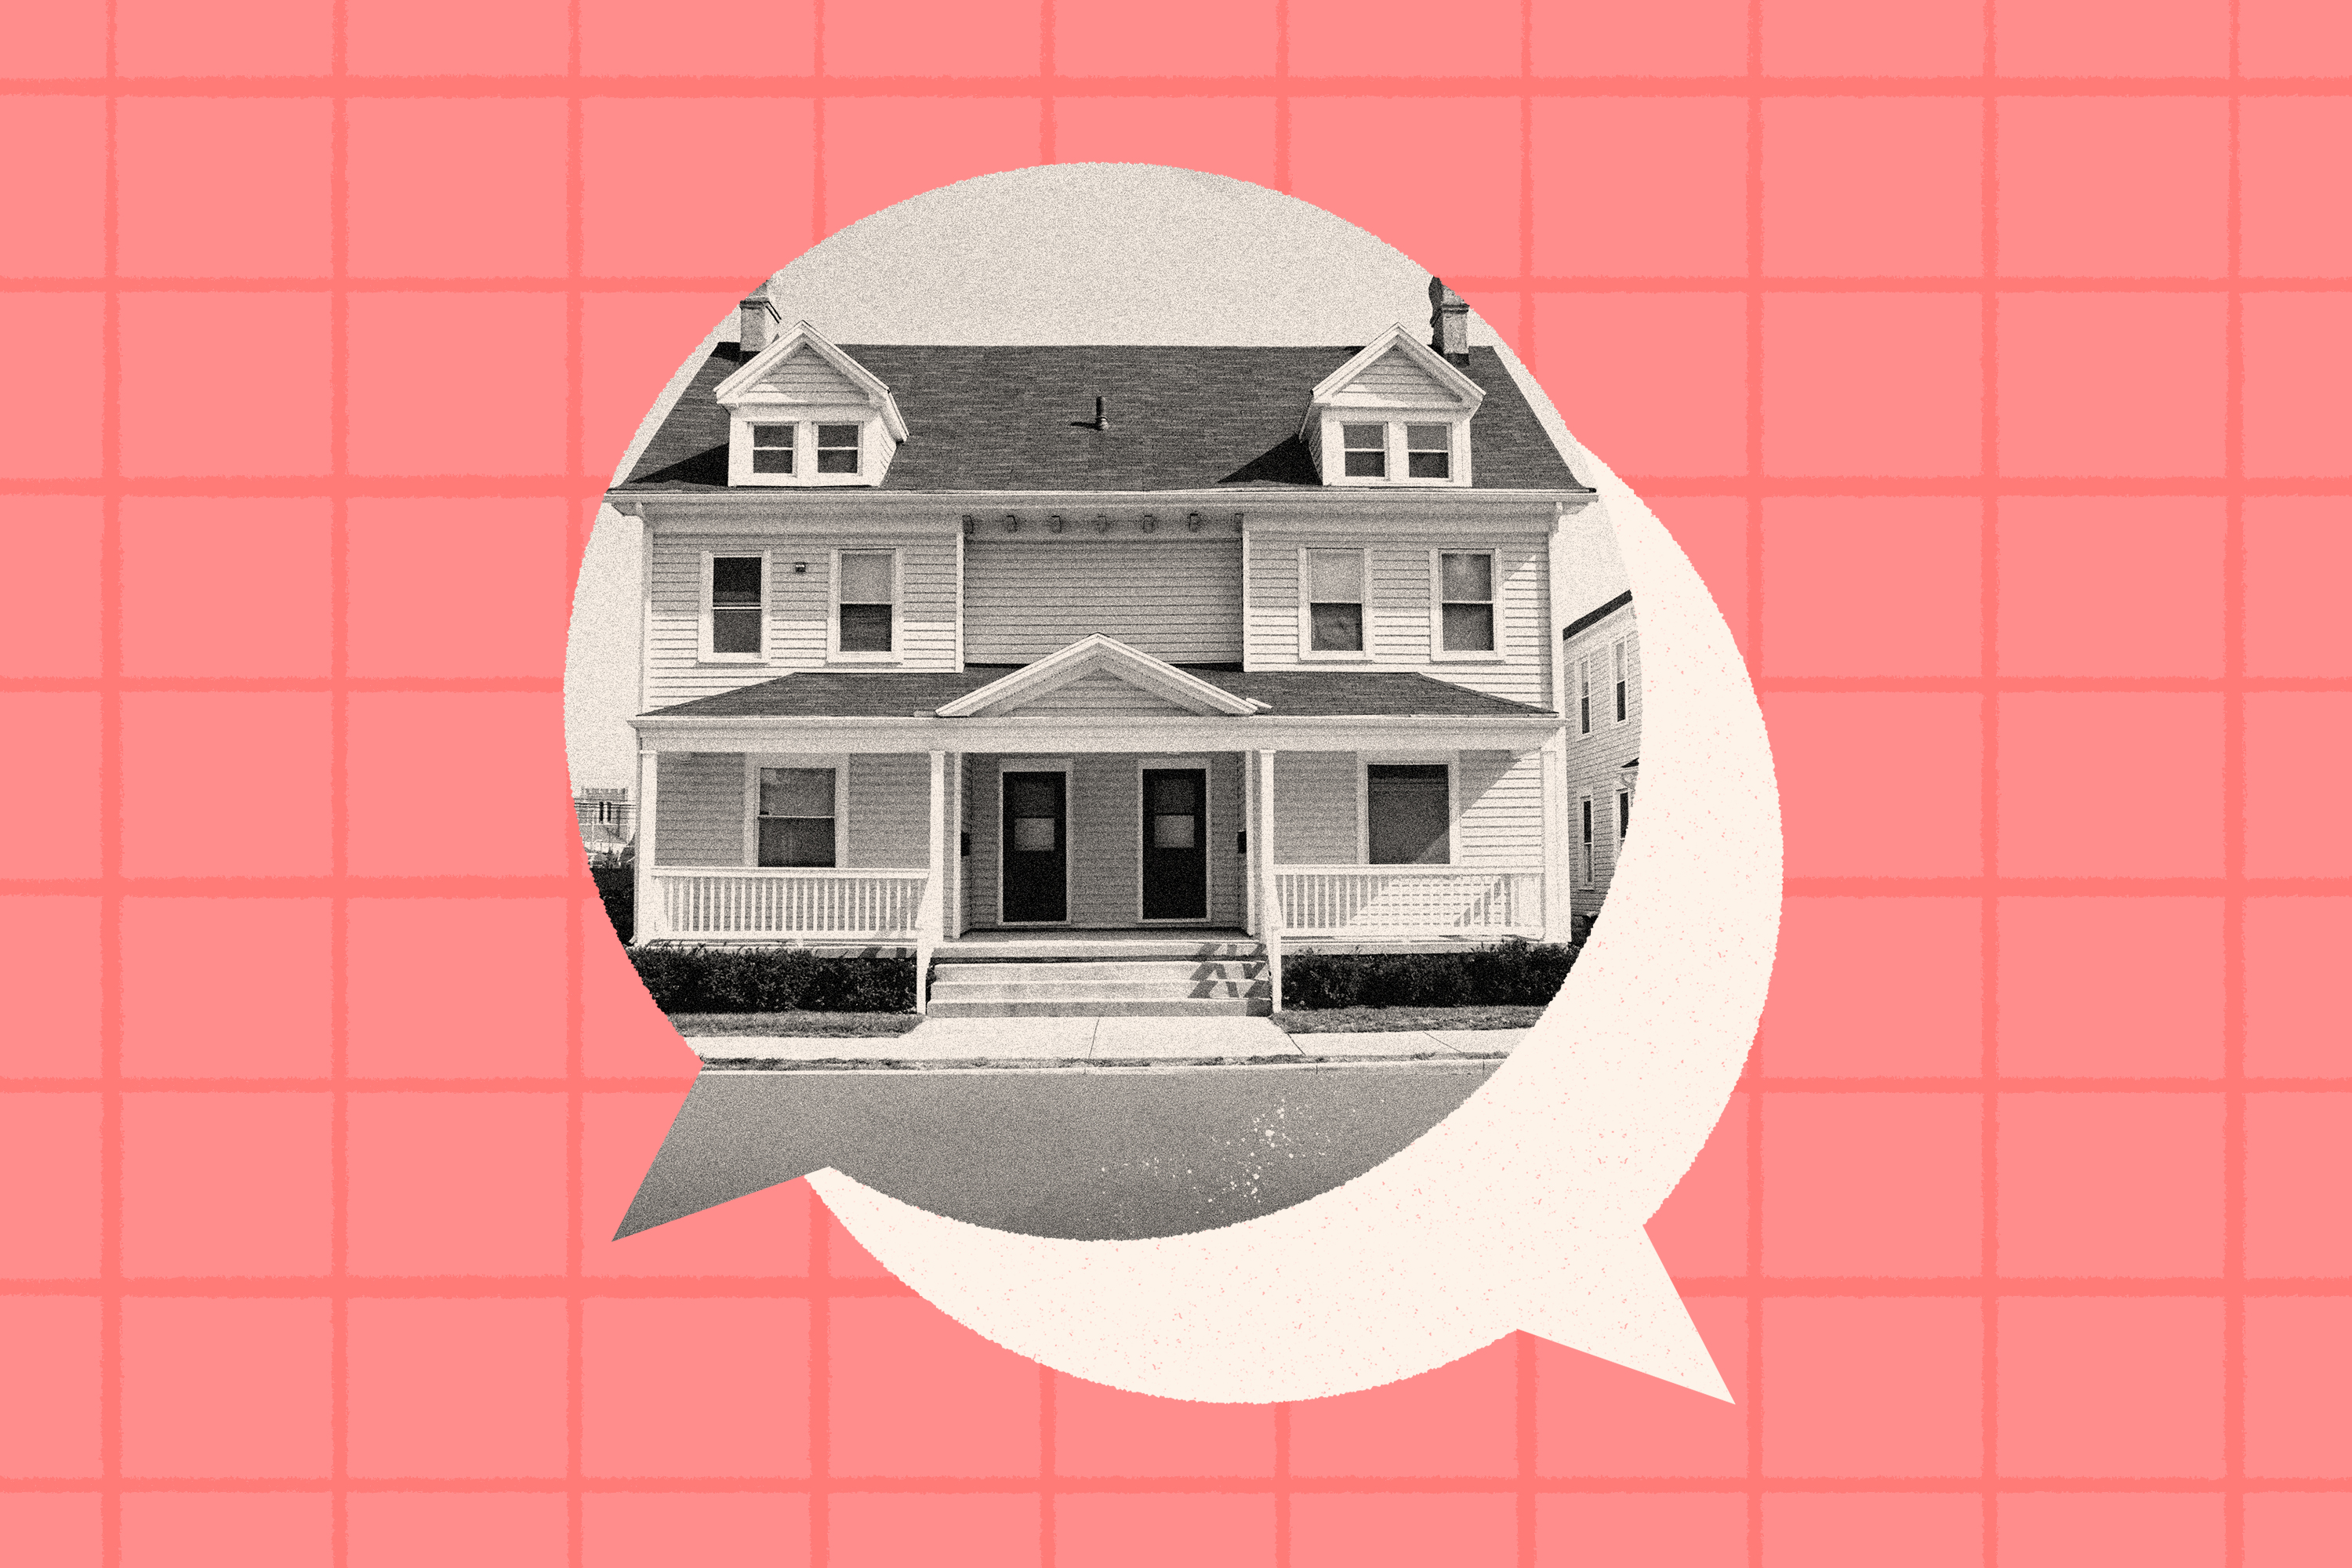 A two story duplex building with a covered porch that extends from one side of the front of the house to the other. The two entrances are side by side and one side of the duplex is the mirror image of the other. The scene is framed in a speech bubble and behind it is a subtle grid pattern.